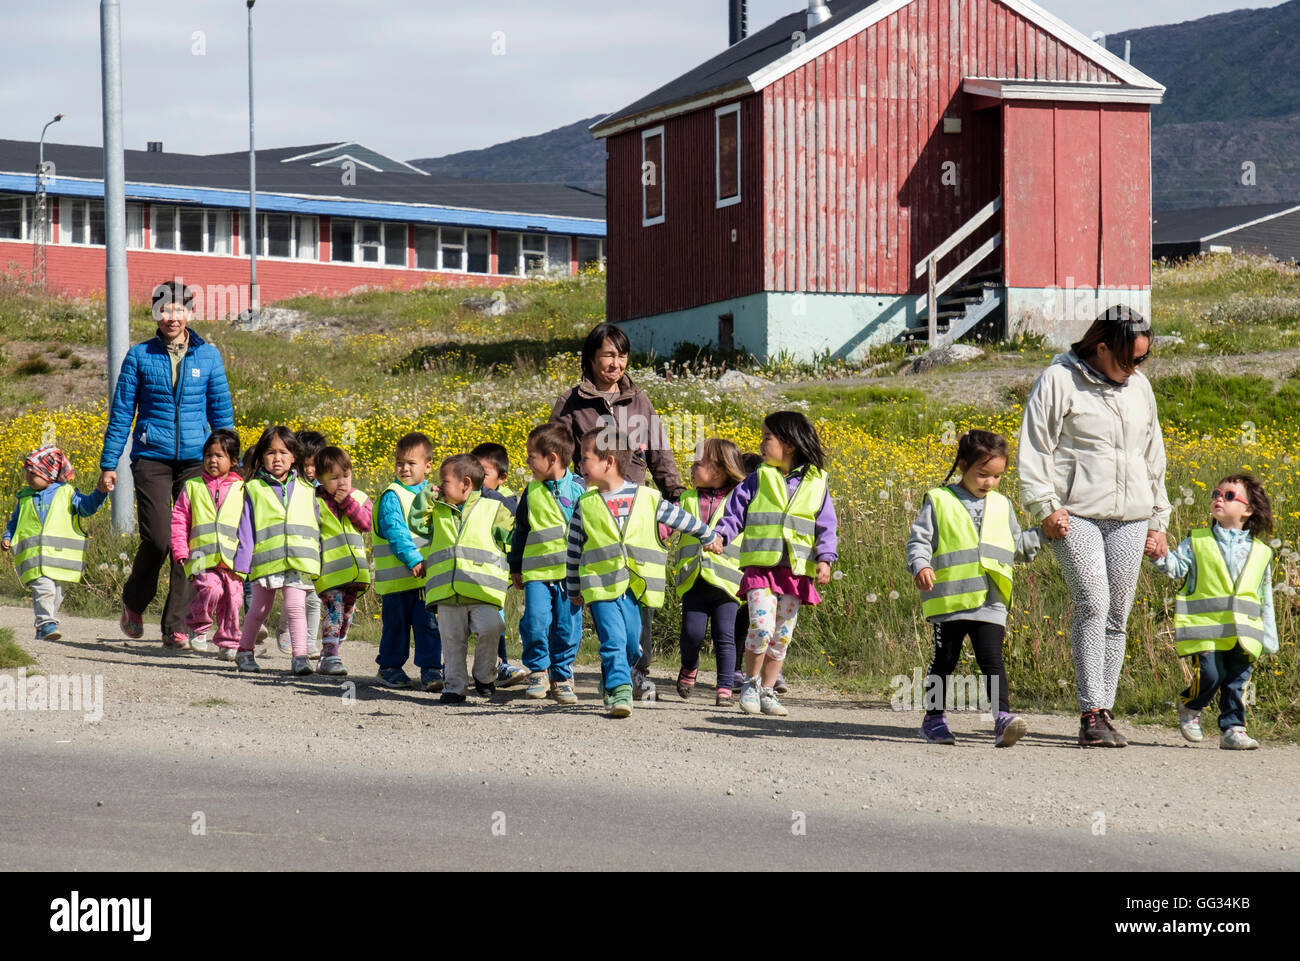 Local school children wearing hi-vis jackets and holding hands walking along a street with their teachers in summer - Stock Image